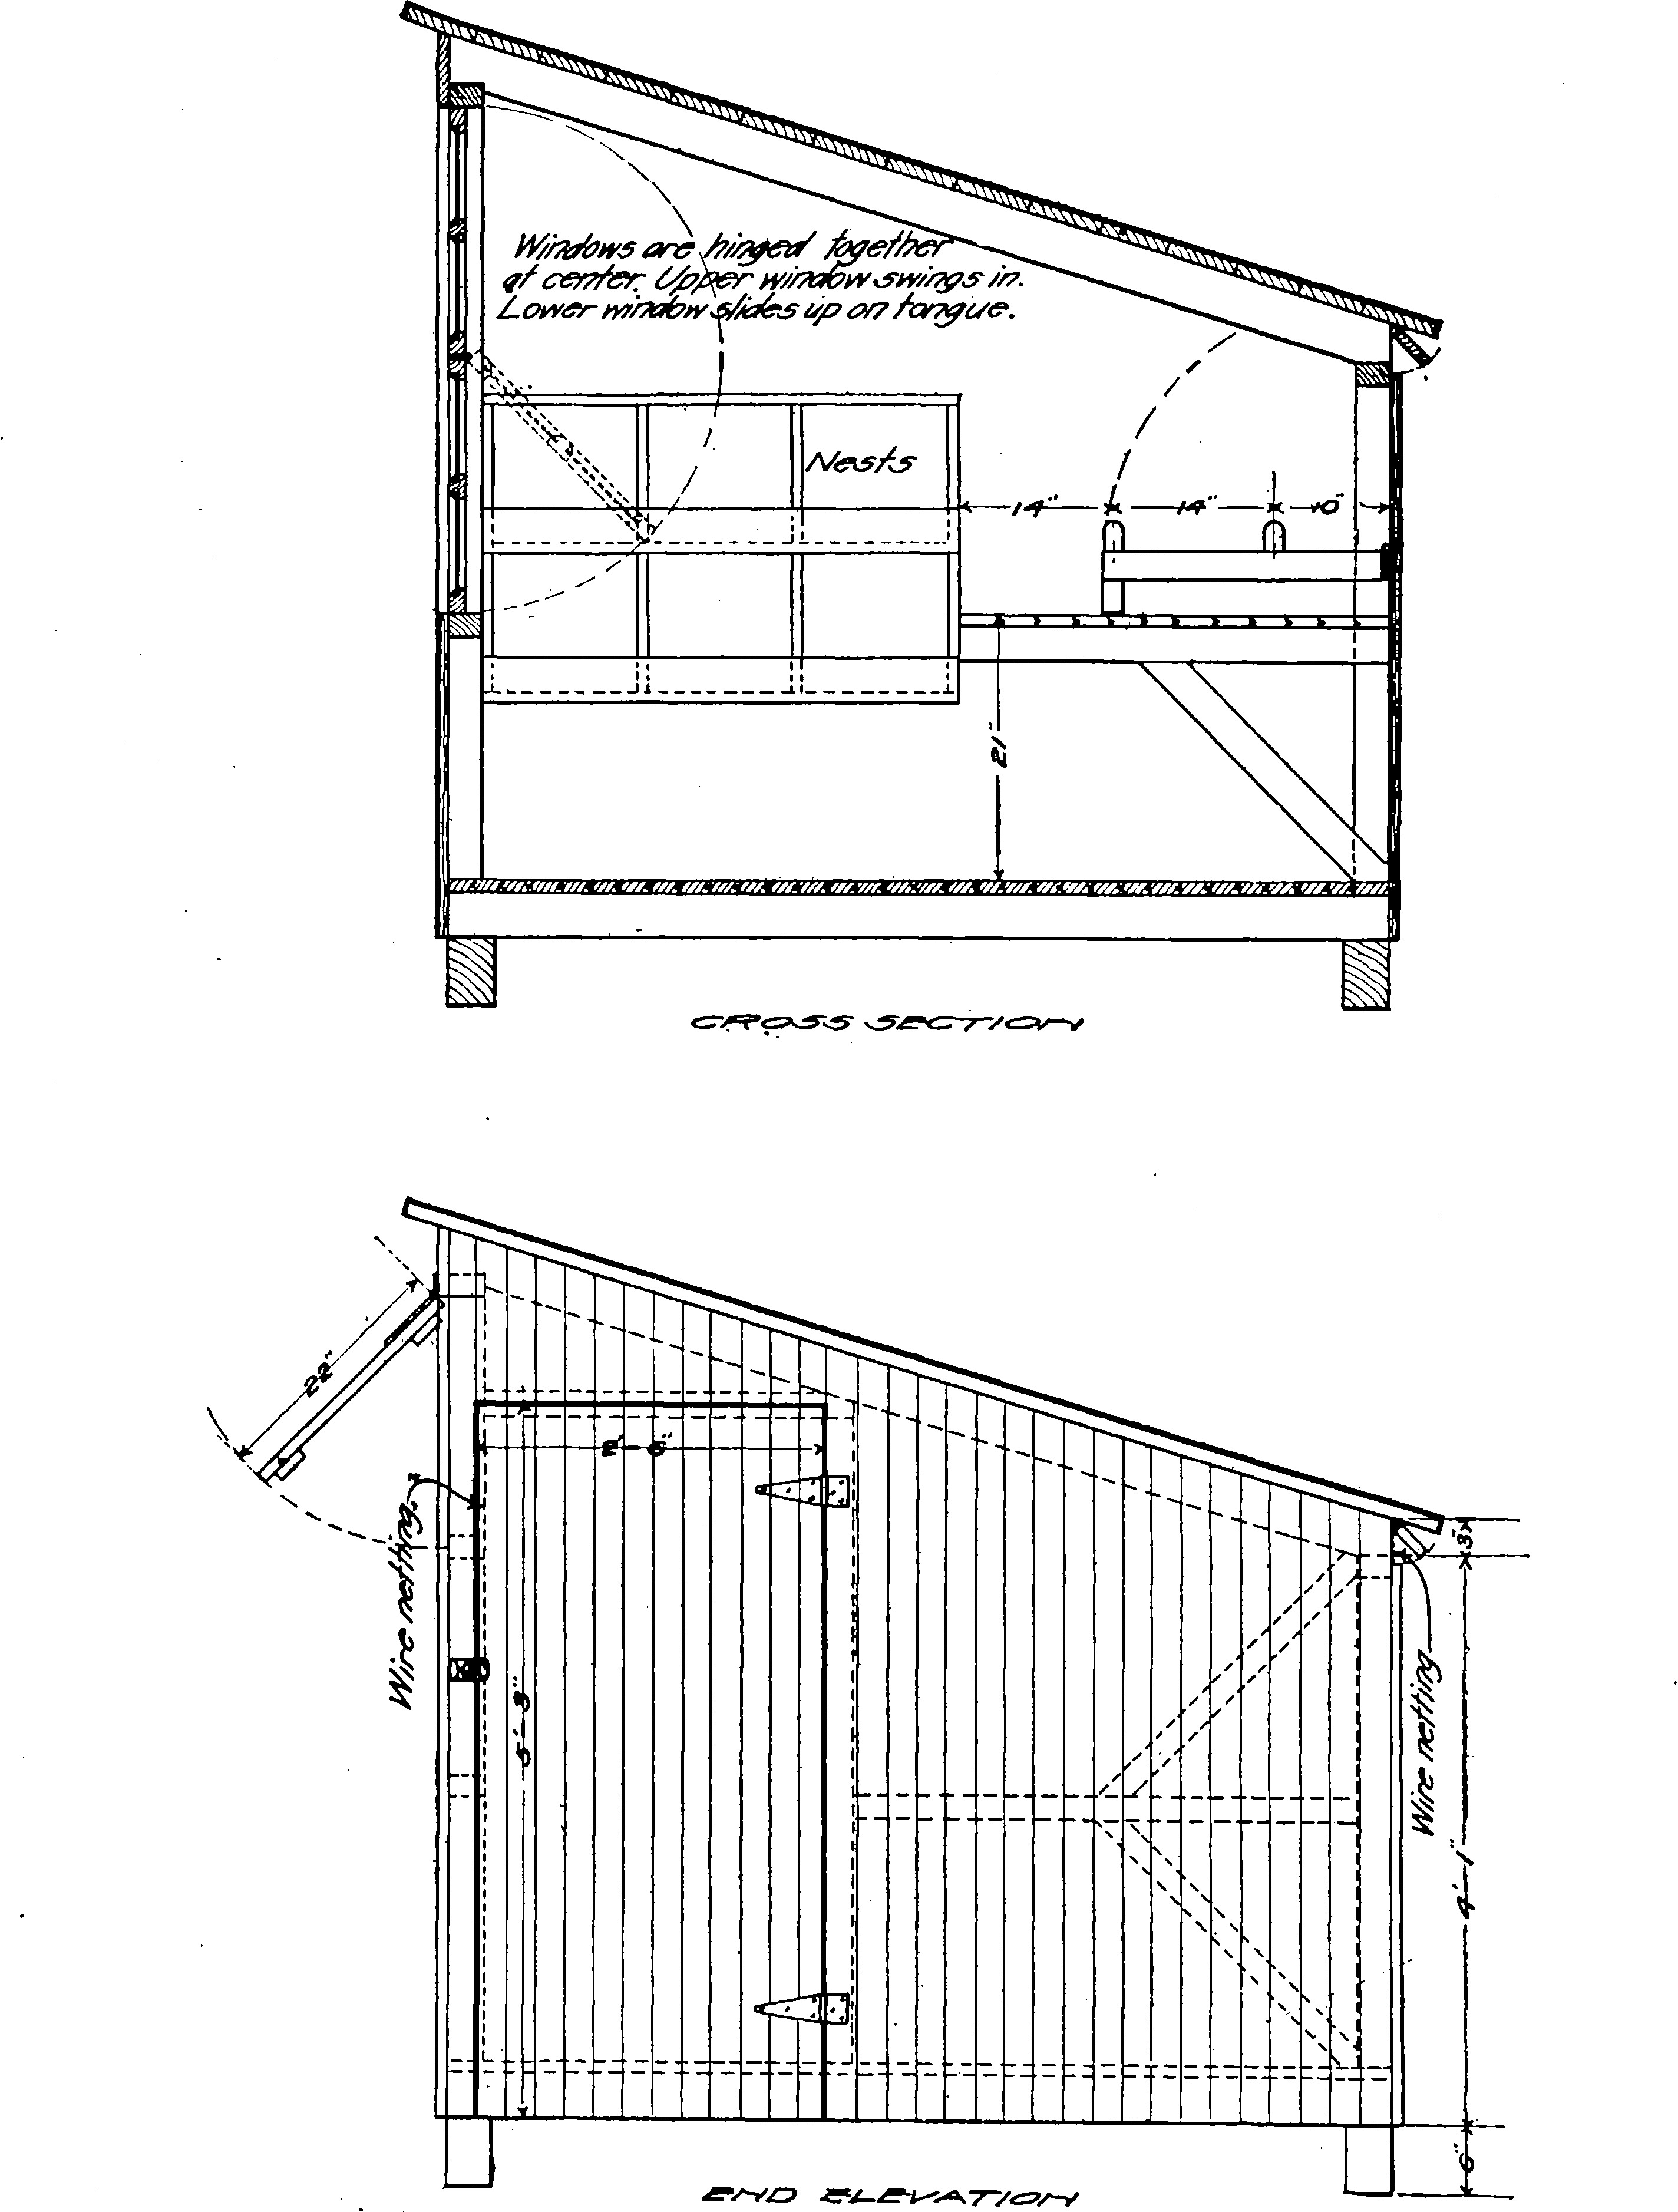 Broiler House Design For Sale: File:Poultry House Construction (1914) (14594697380).jpg